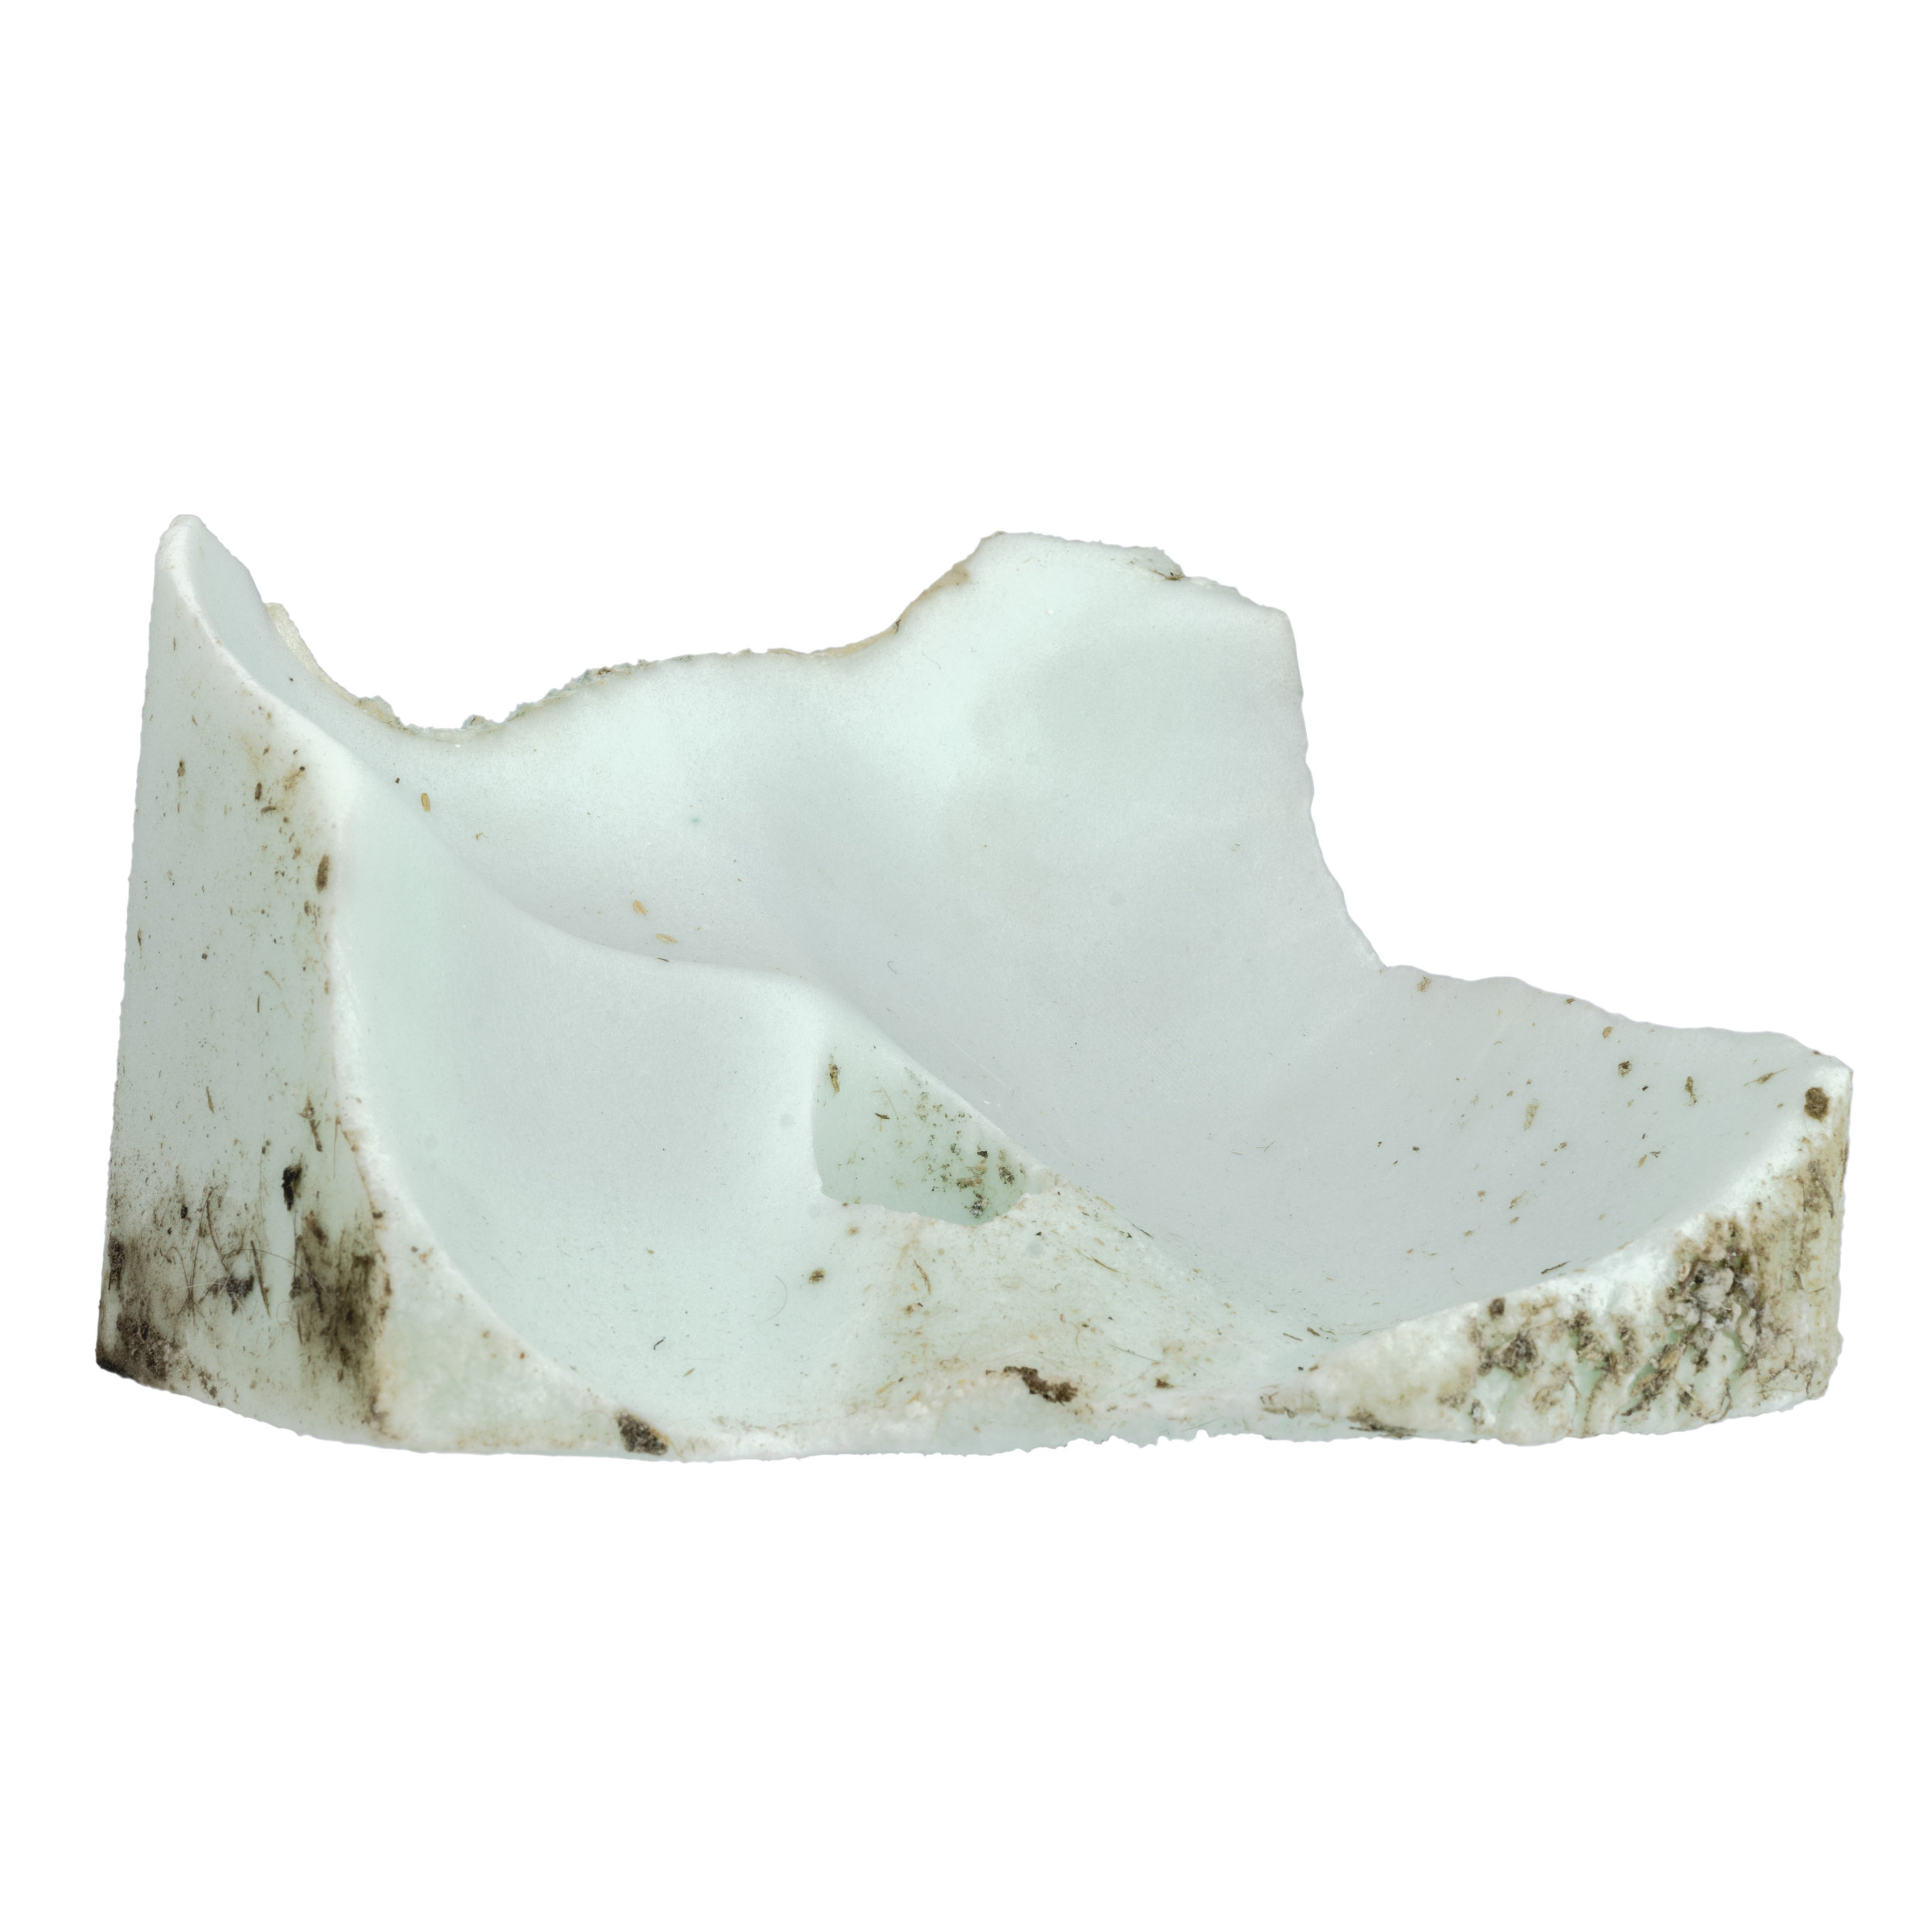 - Mineral salt lickA stone which cows can lick. Made of essential trace elements like magnesium, zinc, copper, iodine, and selenium.